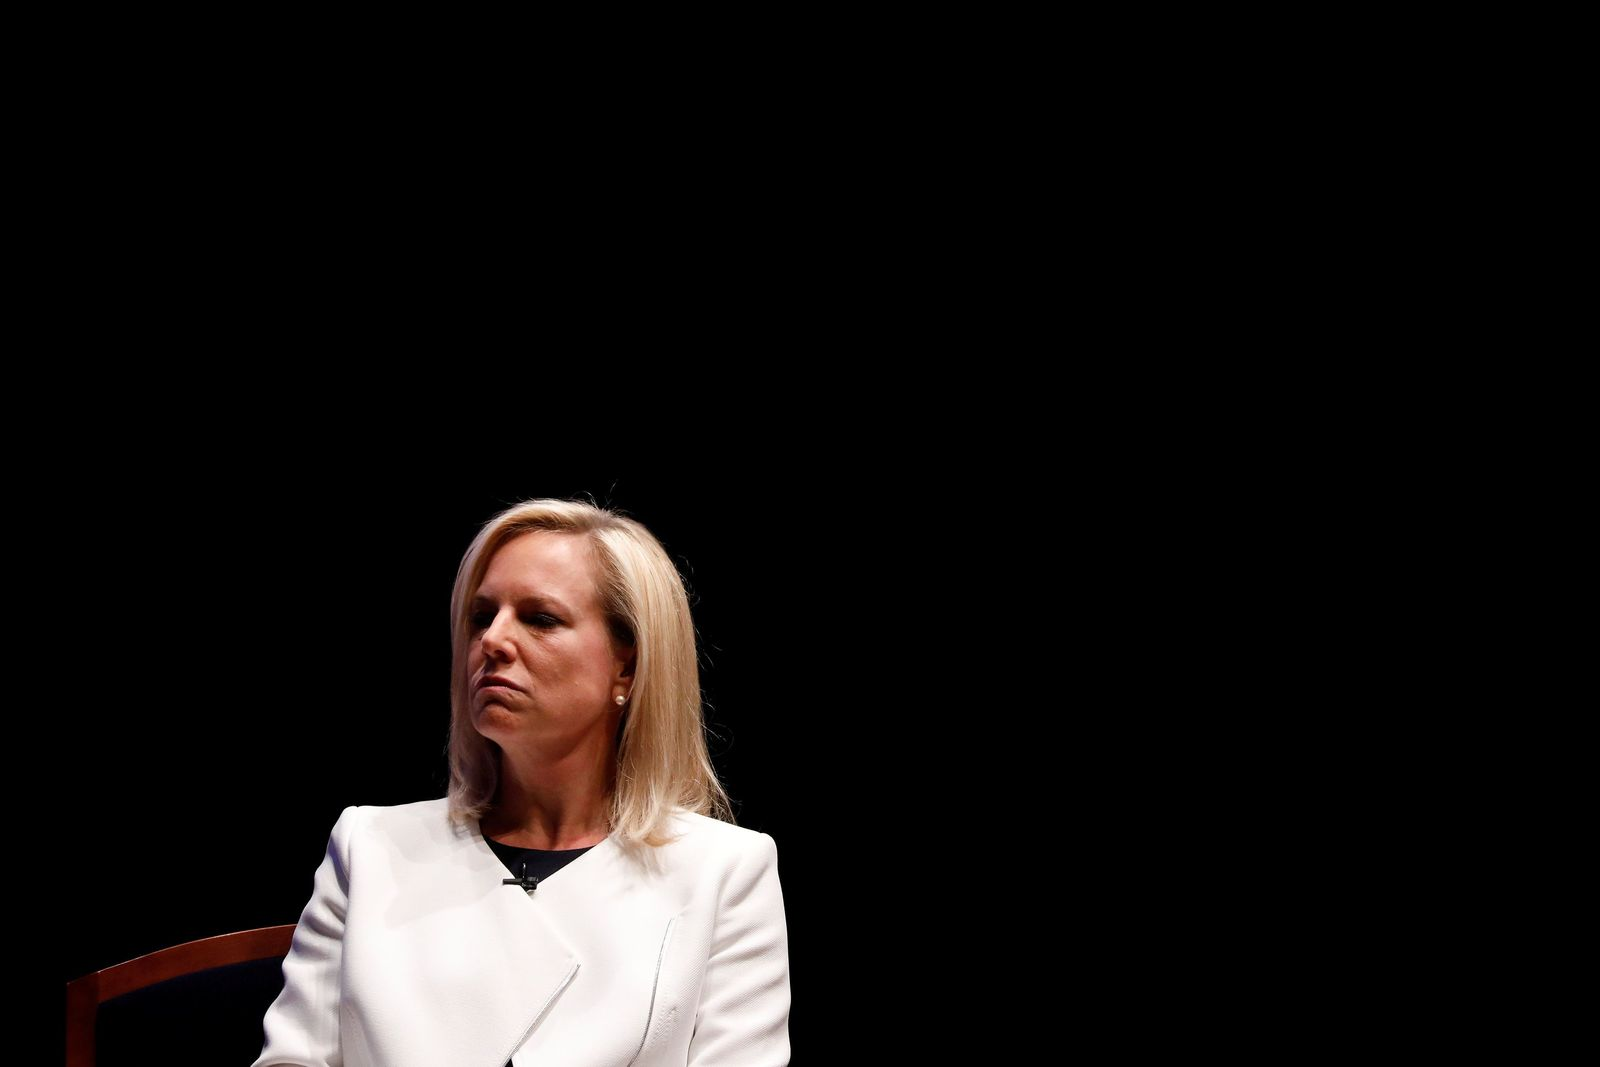 Homeland Security Secretary Kirstjen Nielsen speaks at the Capitol Hill National Security Forum at the U.S. Capitol in Washington